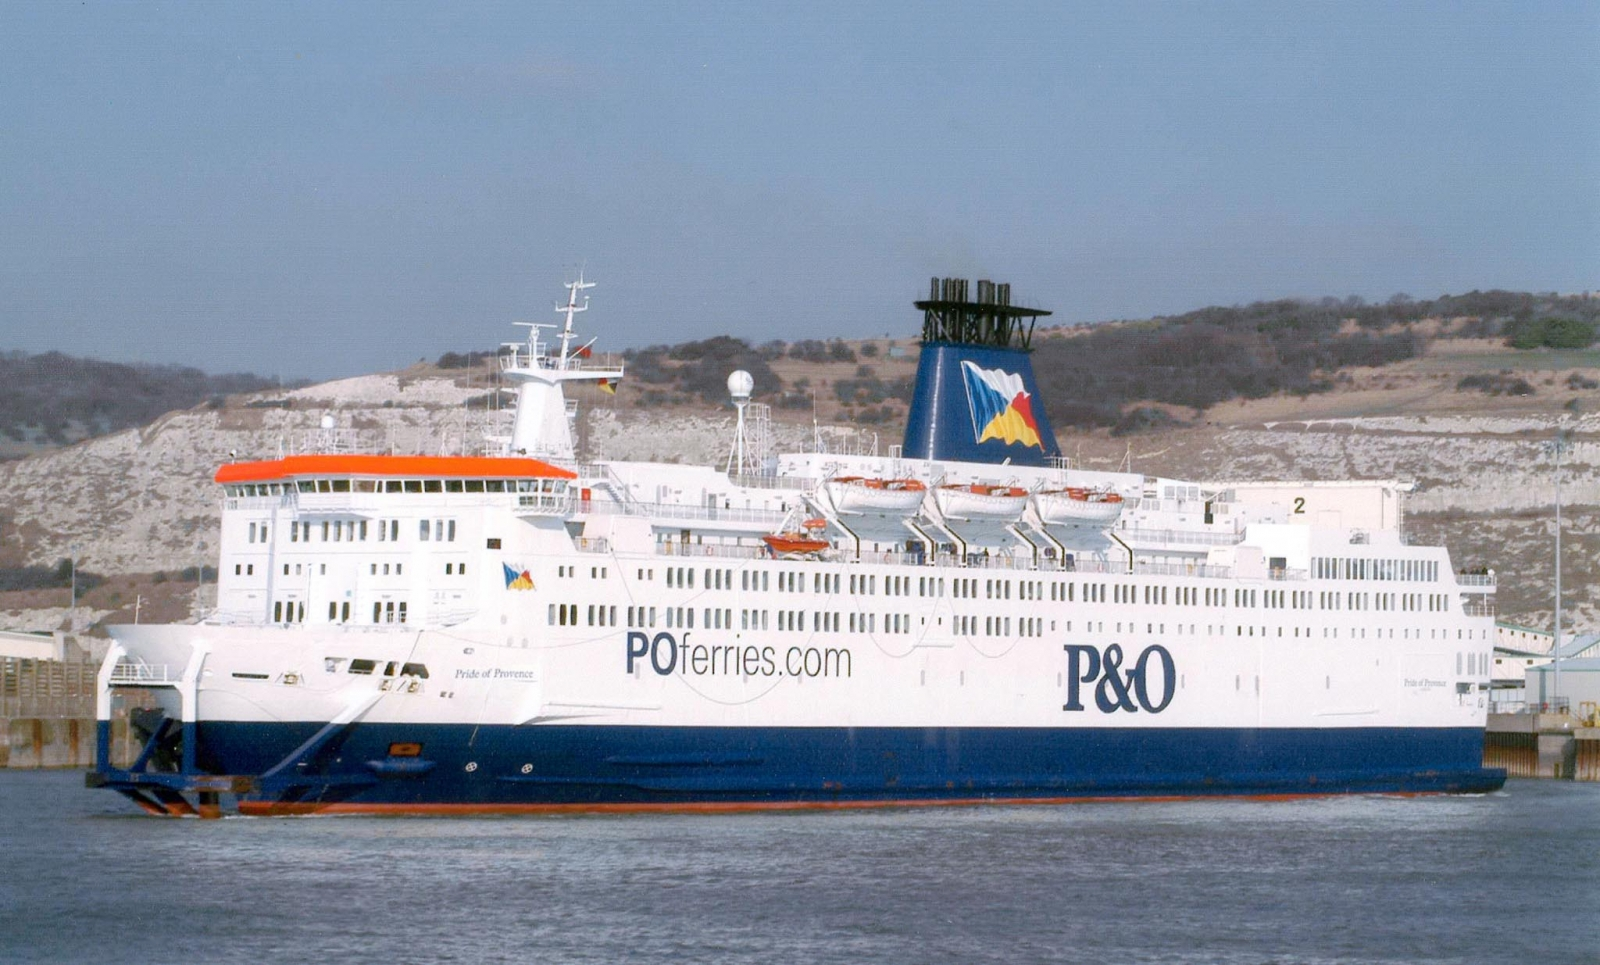 An undated hand out photograph released on April 18, 2003 shows the P&O Pride of Provence ferry.